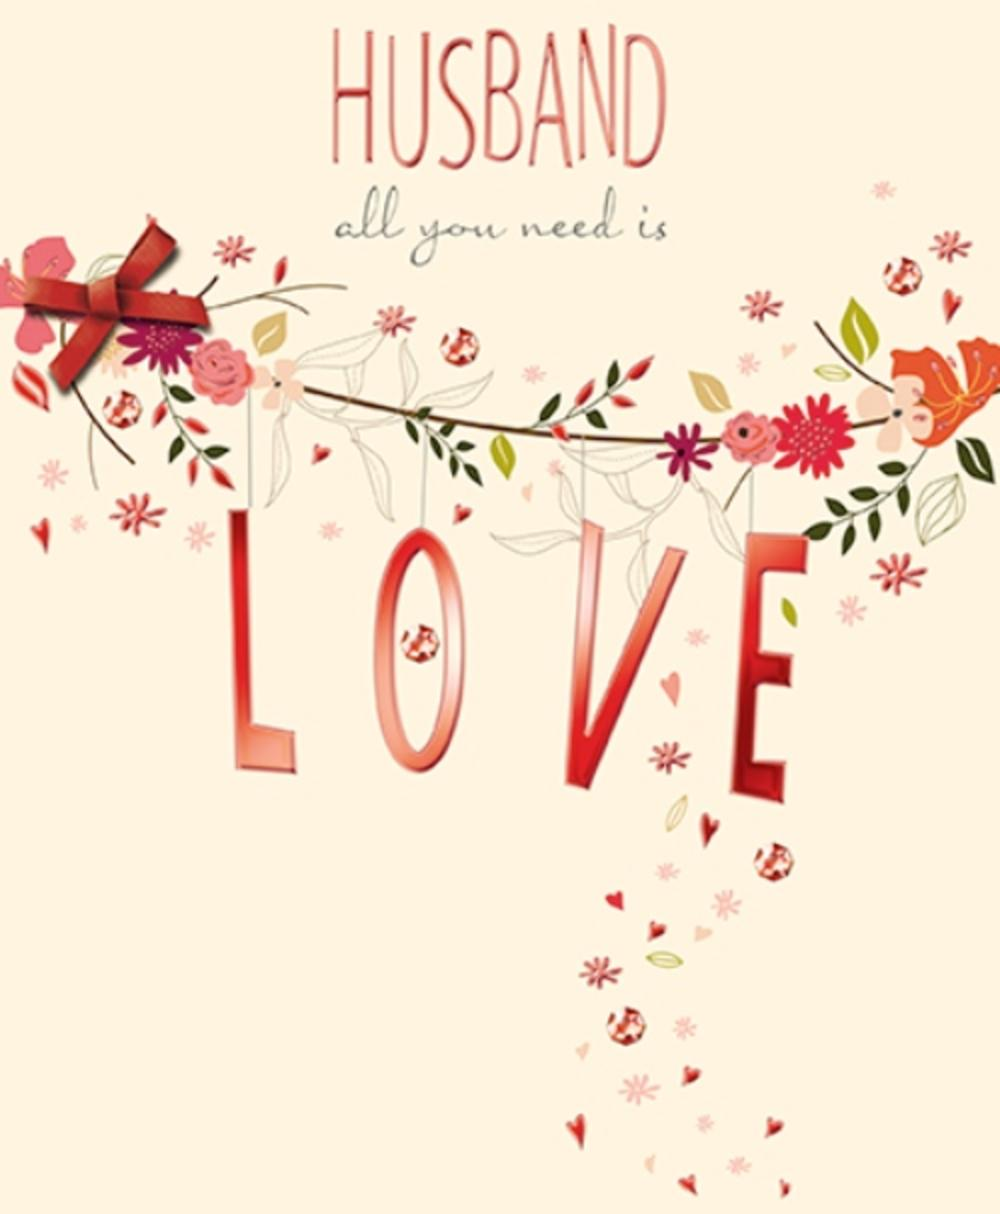 Husband All You Need Is Love Valentine's Day Greeting Card